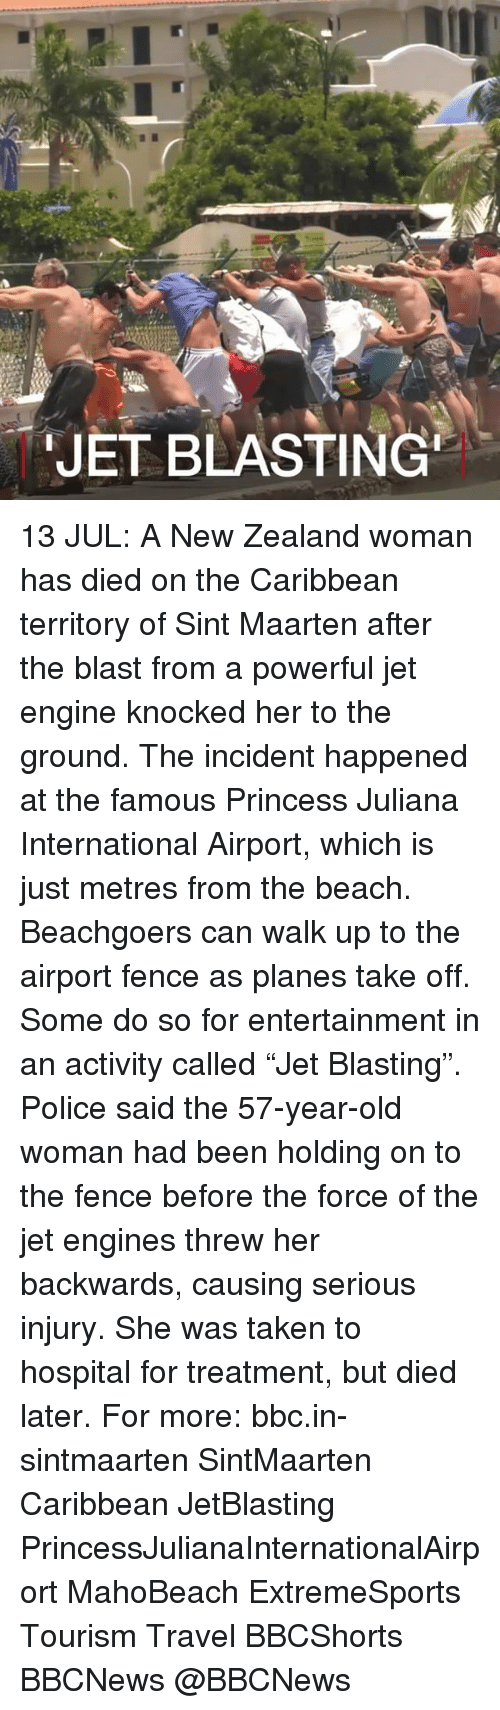 "Memes, Old Woman, and Police: JET BLASTING 13 JUL: A New Zealand woman has died on the Caribbean territory of Sint Maarten after the blast from a powerful jet engine knocked her to the ground. The incident happened at the famous Princess Juliana International Airport, which is just metres from the beach. Beachgoers can walk up to the airport fence as planes take off. Some do so for entertainment in an activity called ""Jet Blasting"". Police said the 57-year-old woman had been holding on to the fence before the force of the jet engines threw her backwards, causing serious injury. She was taken to hospital for treatment, but died later. For more: bbc.in-sintmaarten SintMaarten Caribbean JetBlasting PrincessJulianaInternationalAirport MahoBeach ExtremeSports Tourism Travel BBCShorts BBCNews @BBCNews"